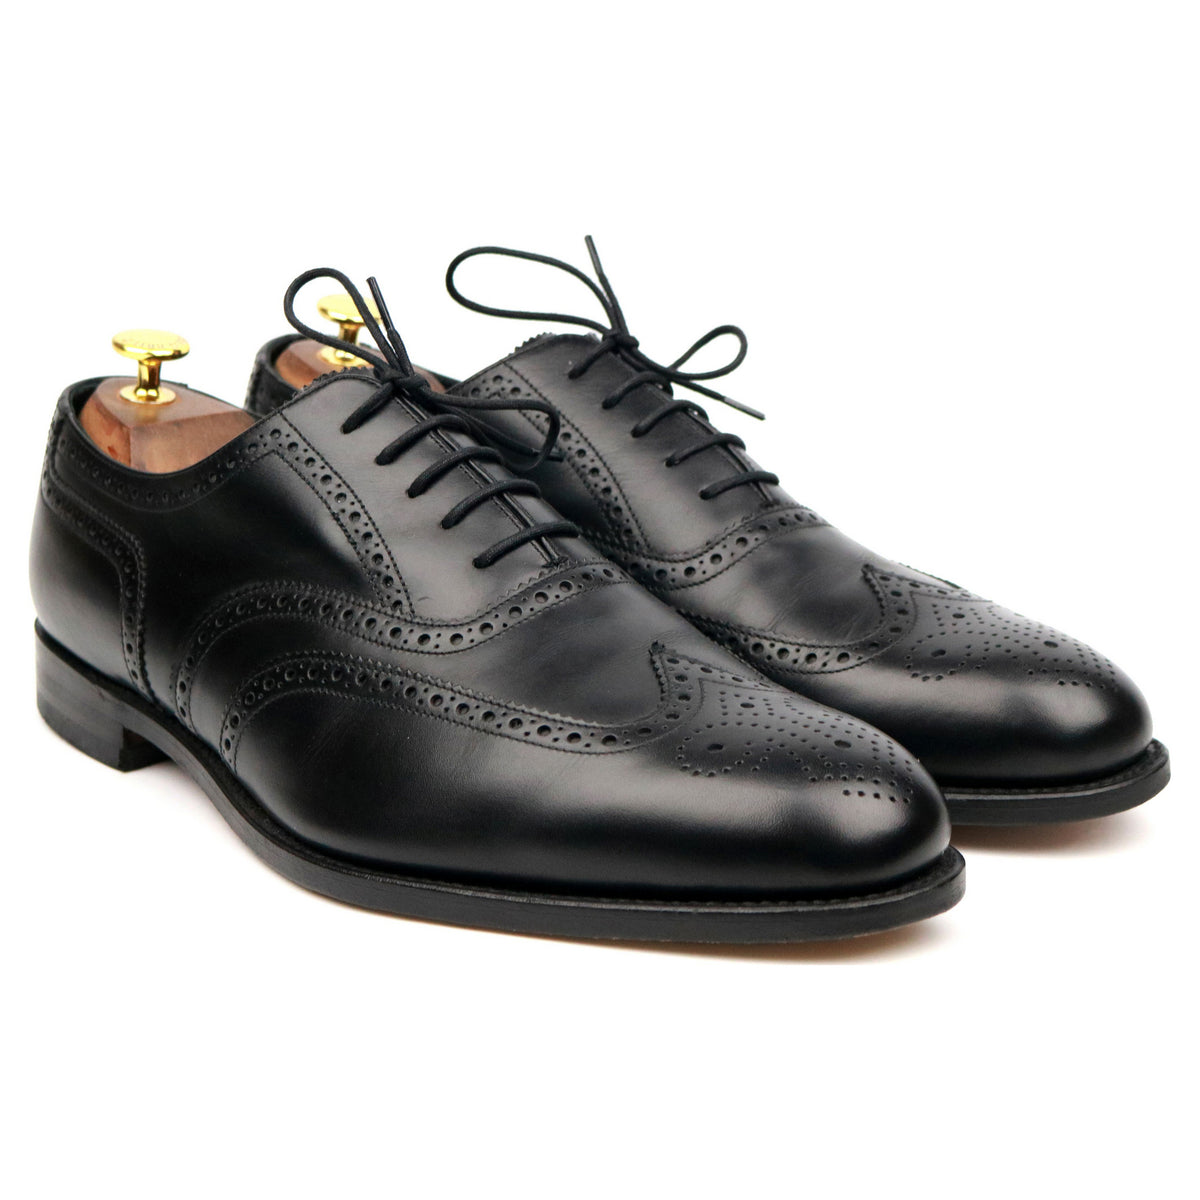 Loake Evolution 'Bailey' Black Leather Brogues UK 10.5 G